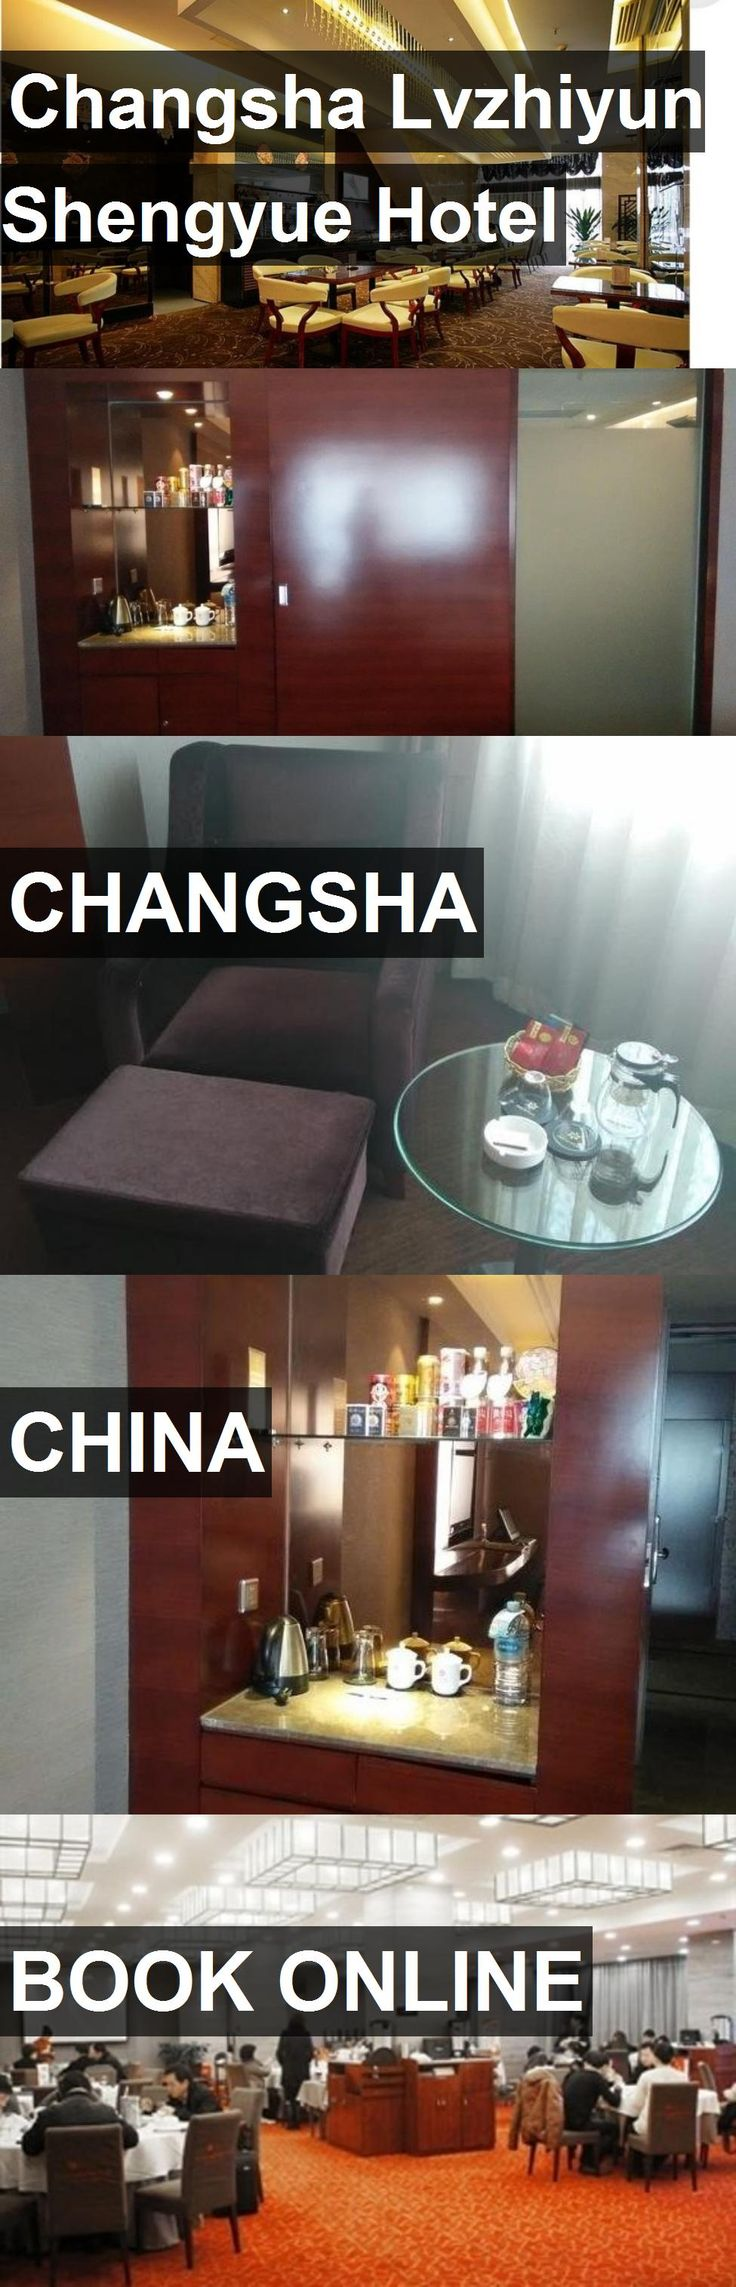 Changsha Lvzhiyun Shengyue Hotel in Changsha, China. For more information, photos, reviews and best prices please follow the link. #China #Changsha #travel #vacation #hotel